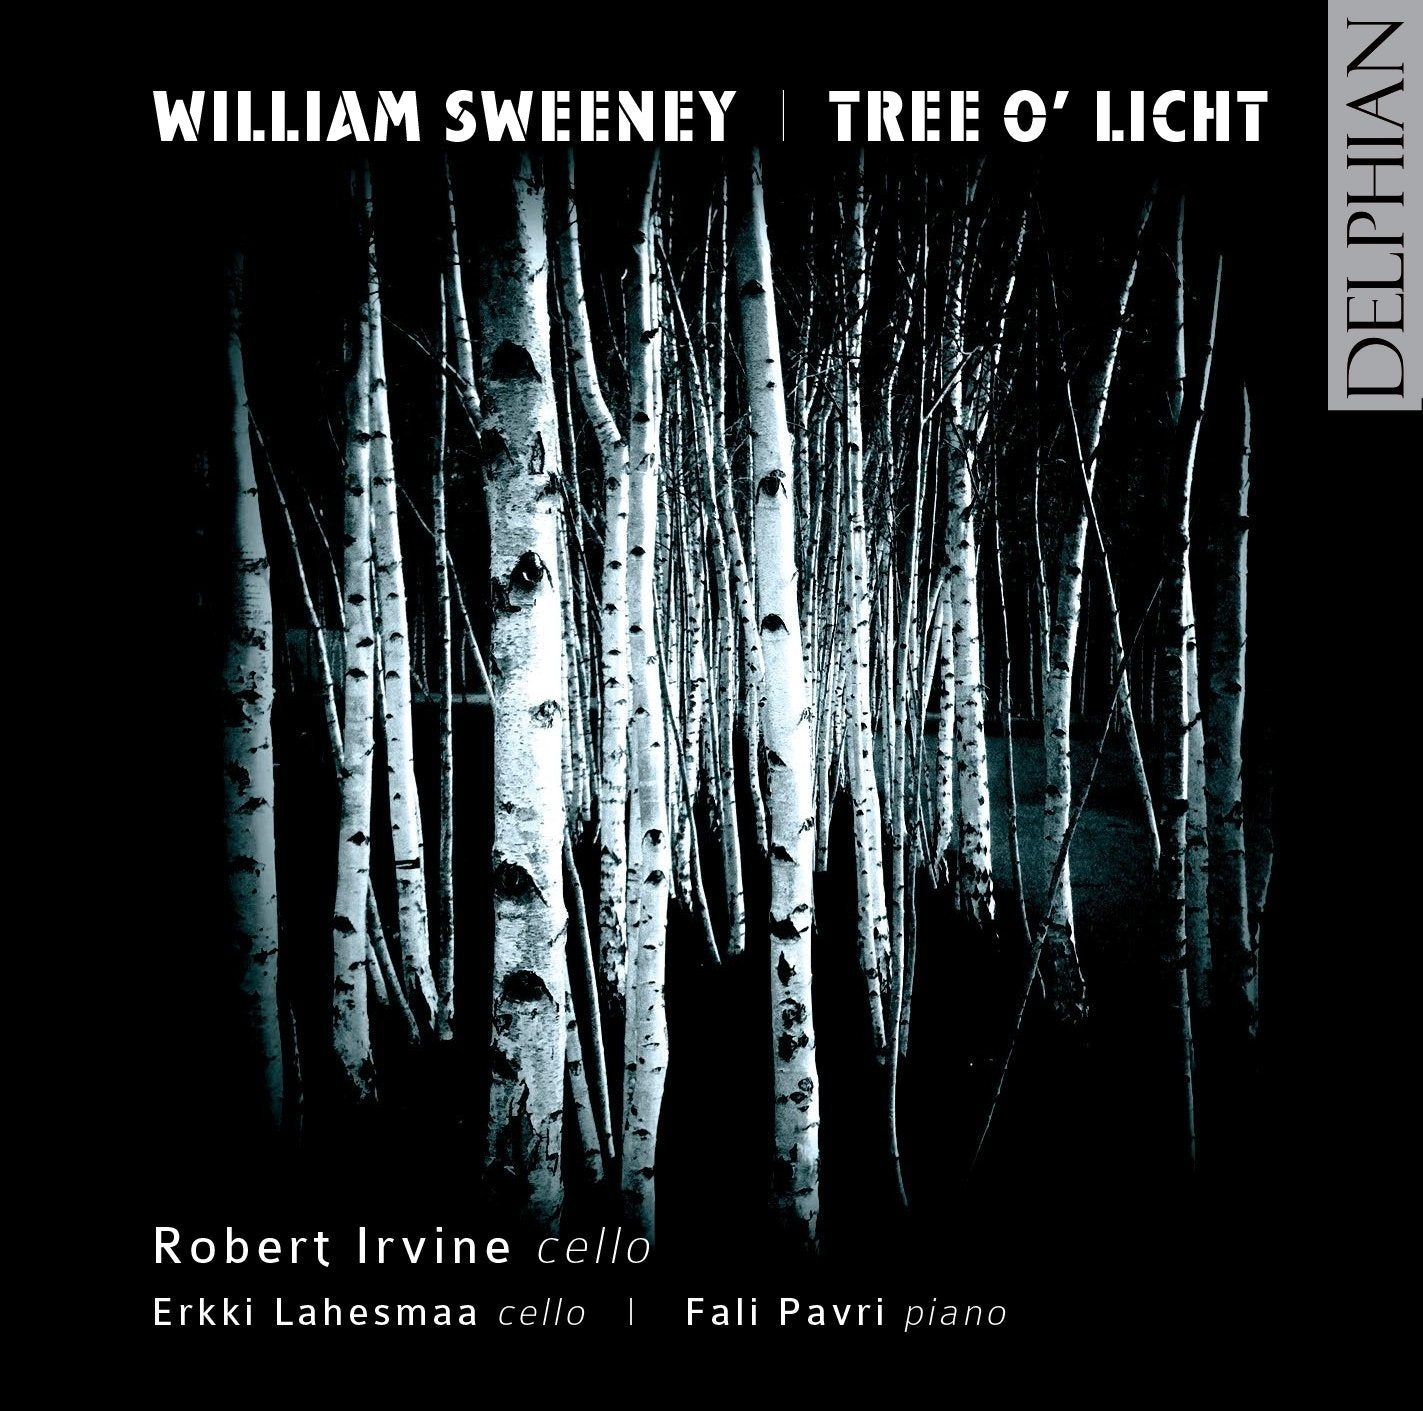 William Sweeney: Tree o' Licht CD Delphian Records